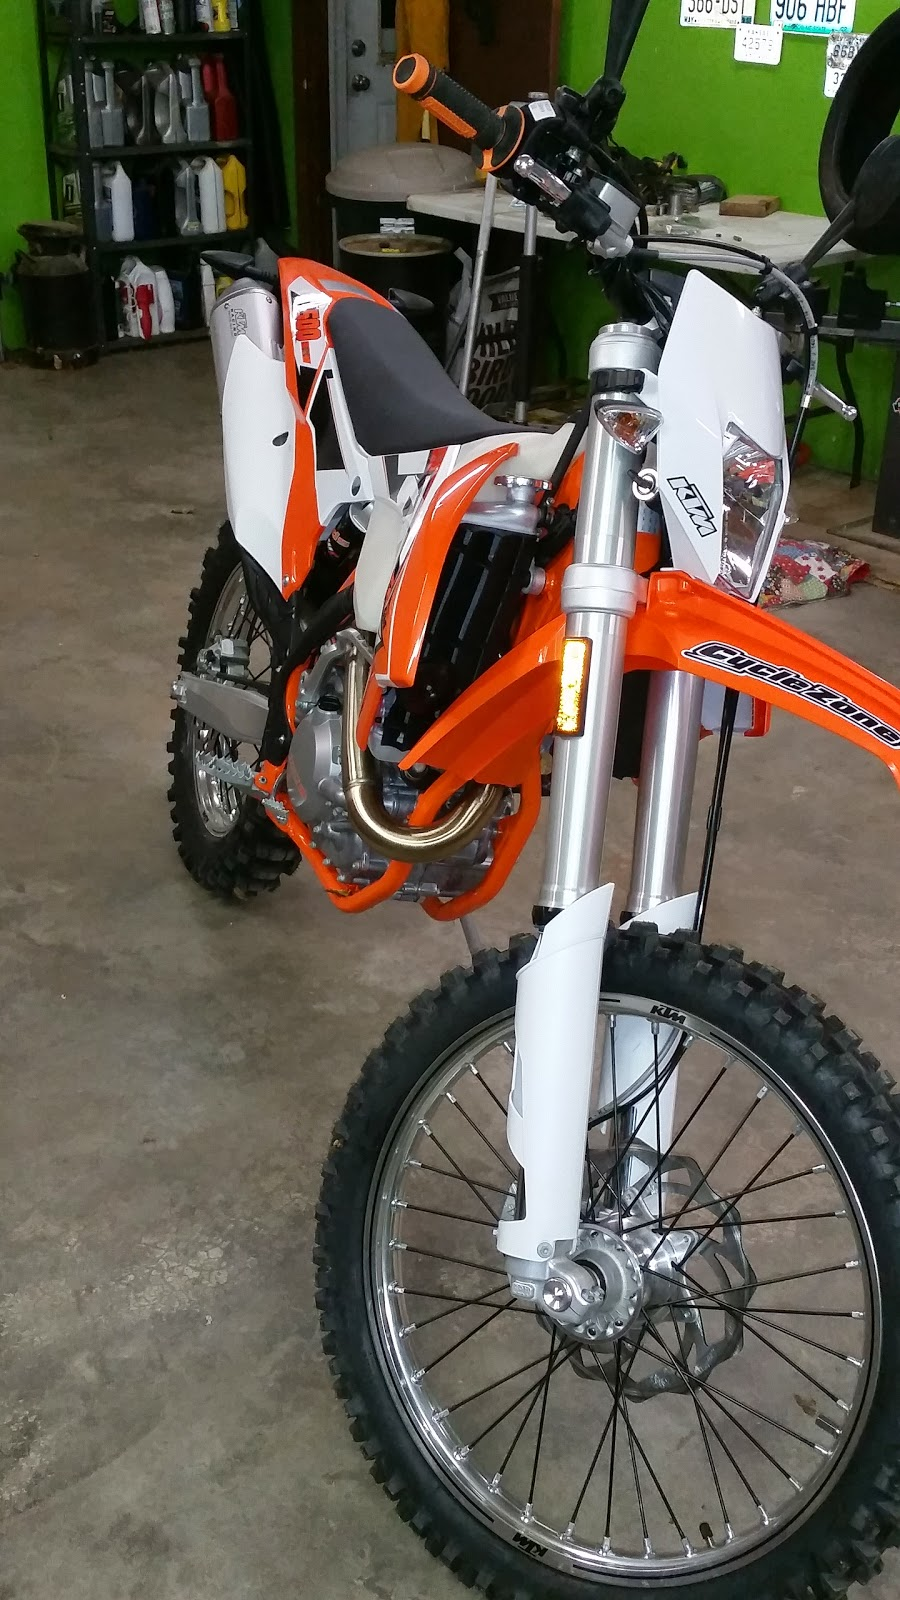 KTM 500 EXC 2015 Valve Check. This was a very simple Procedure. Although I  do not have a service manual, the video link below and previous experience  made ...